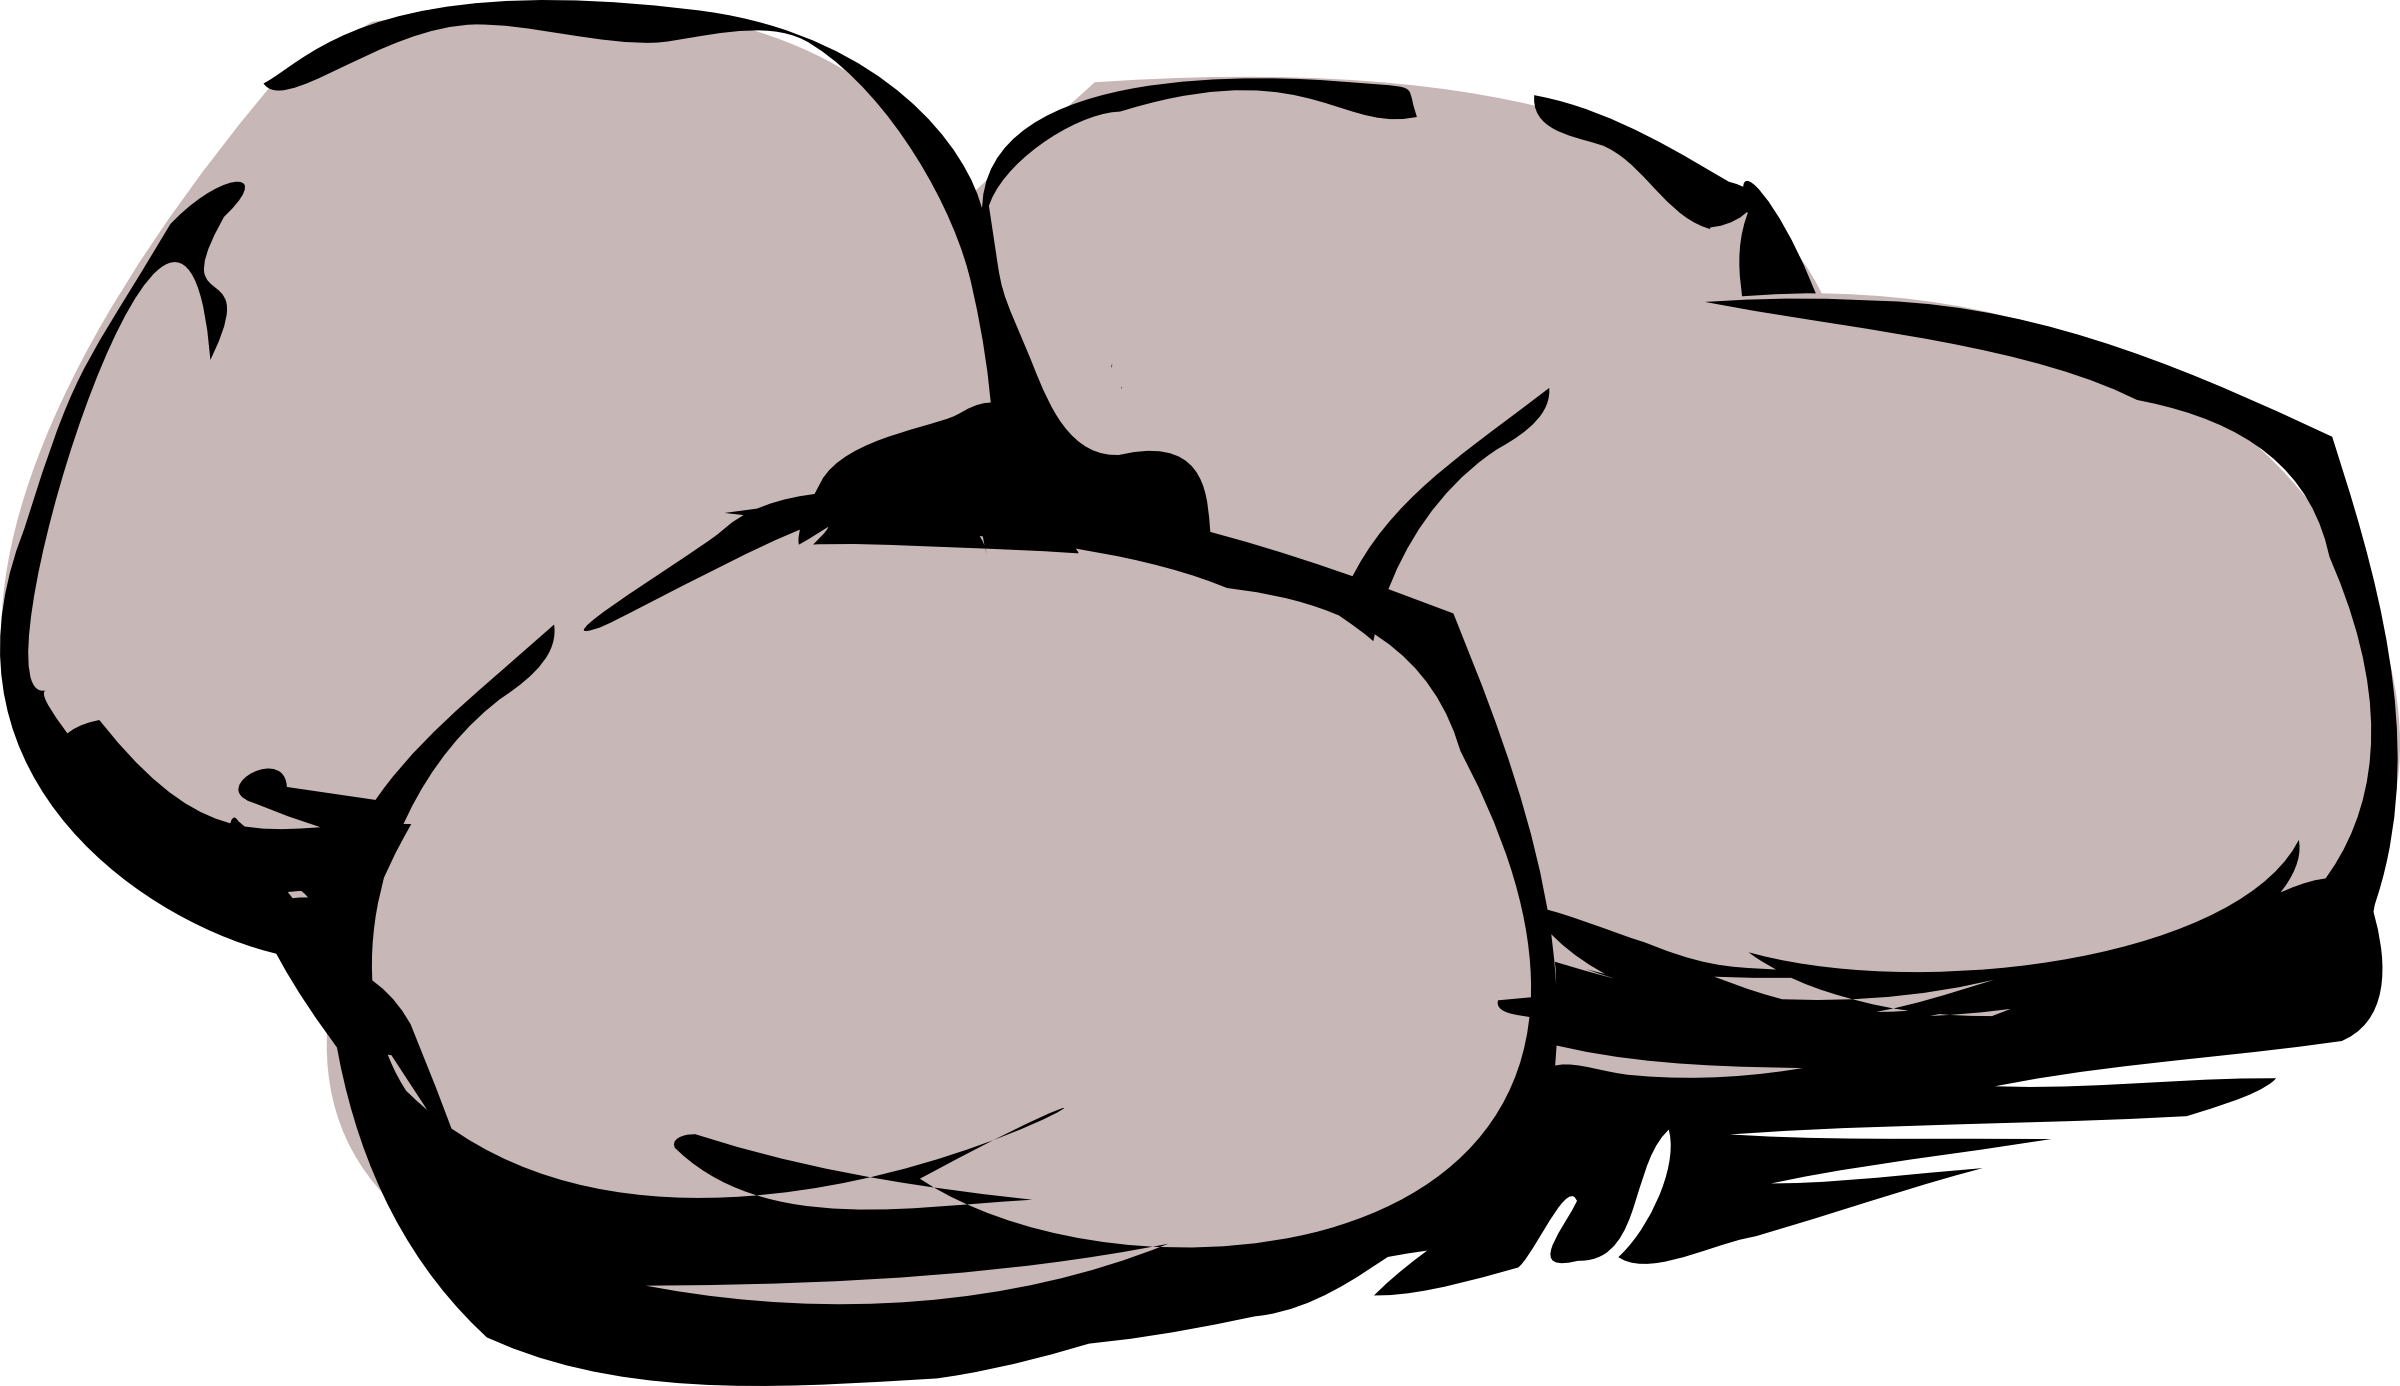 Boulders clipart #7, Download drawings